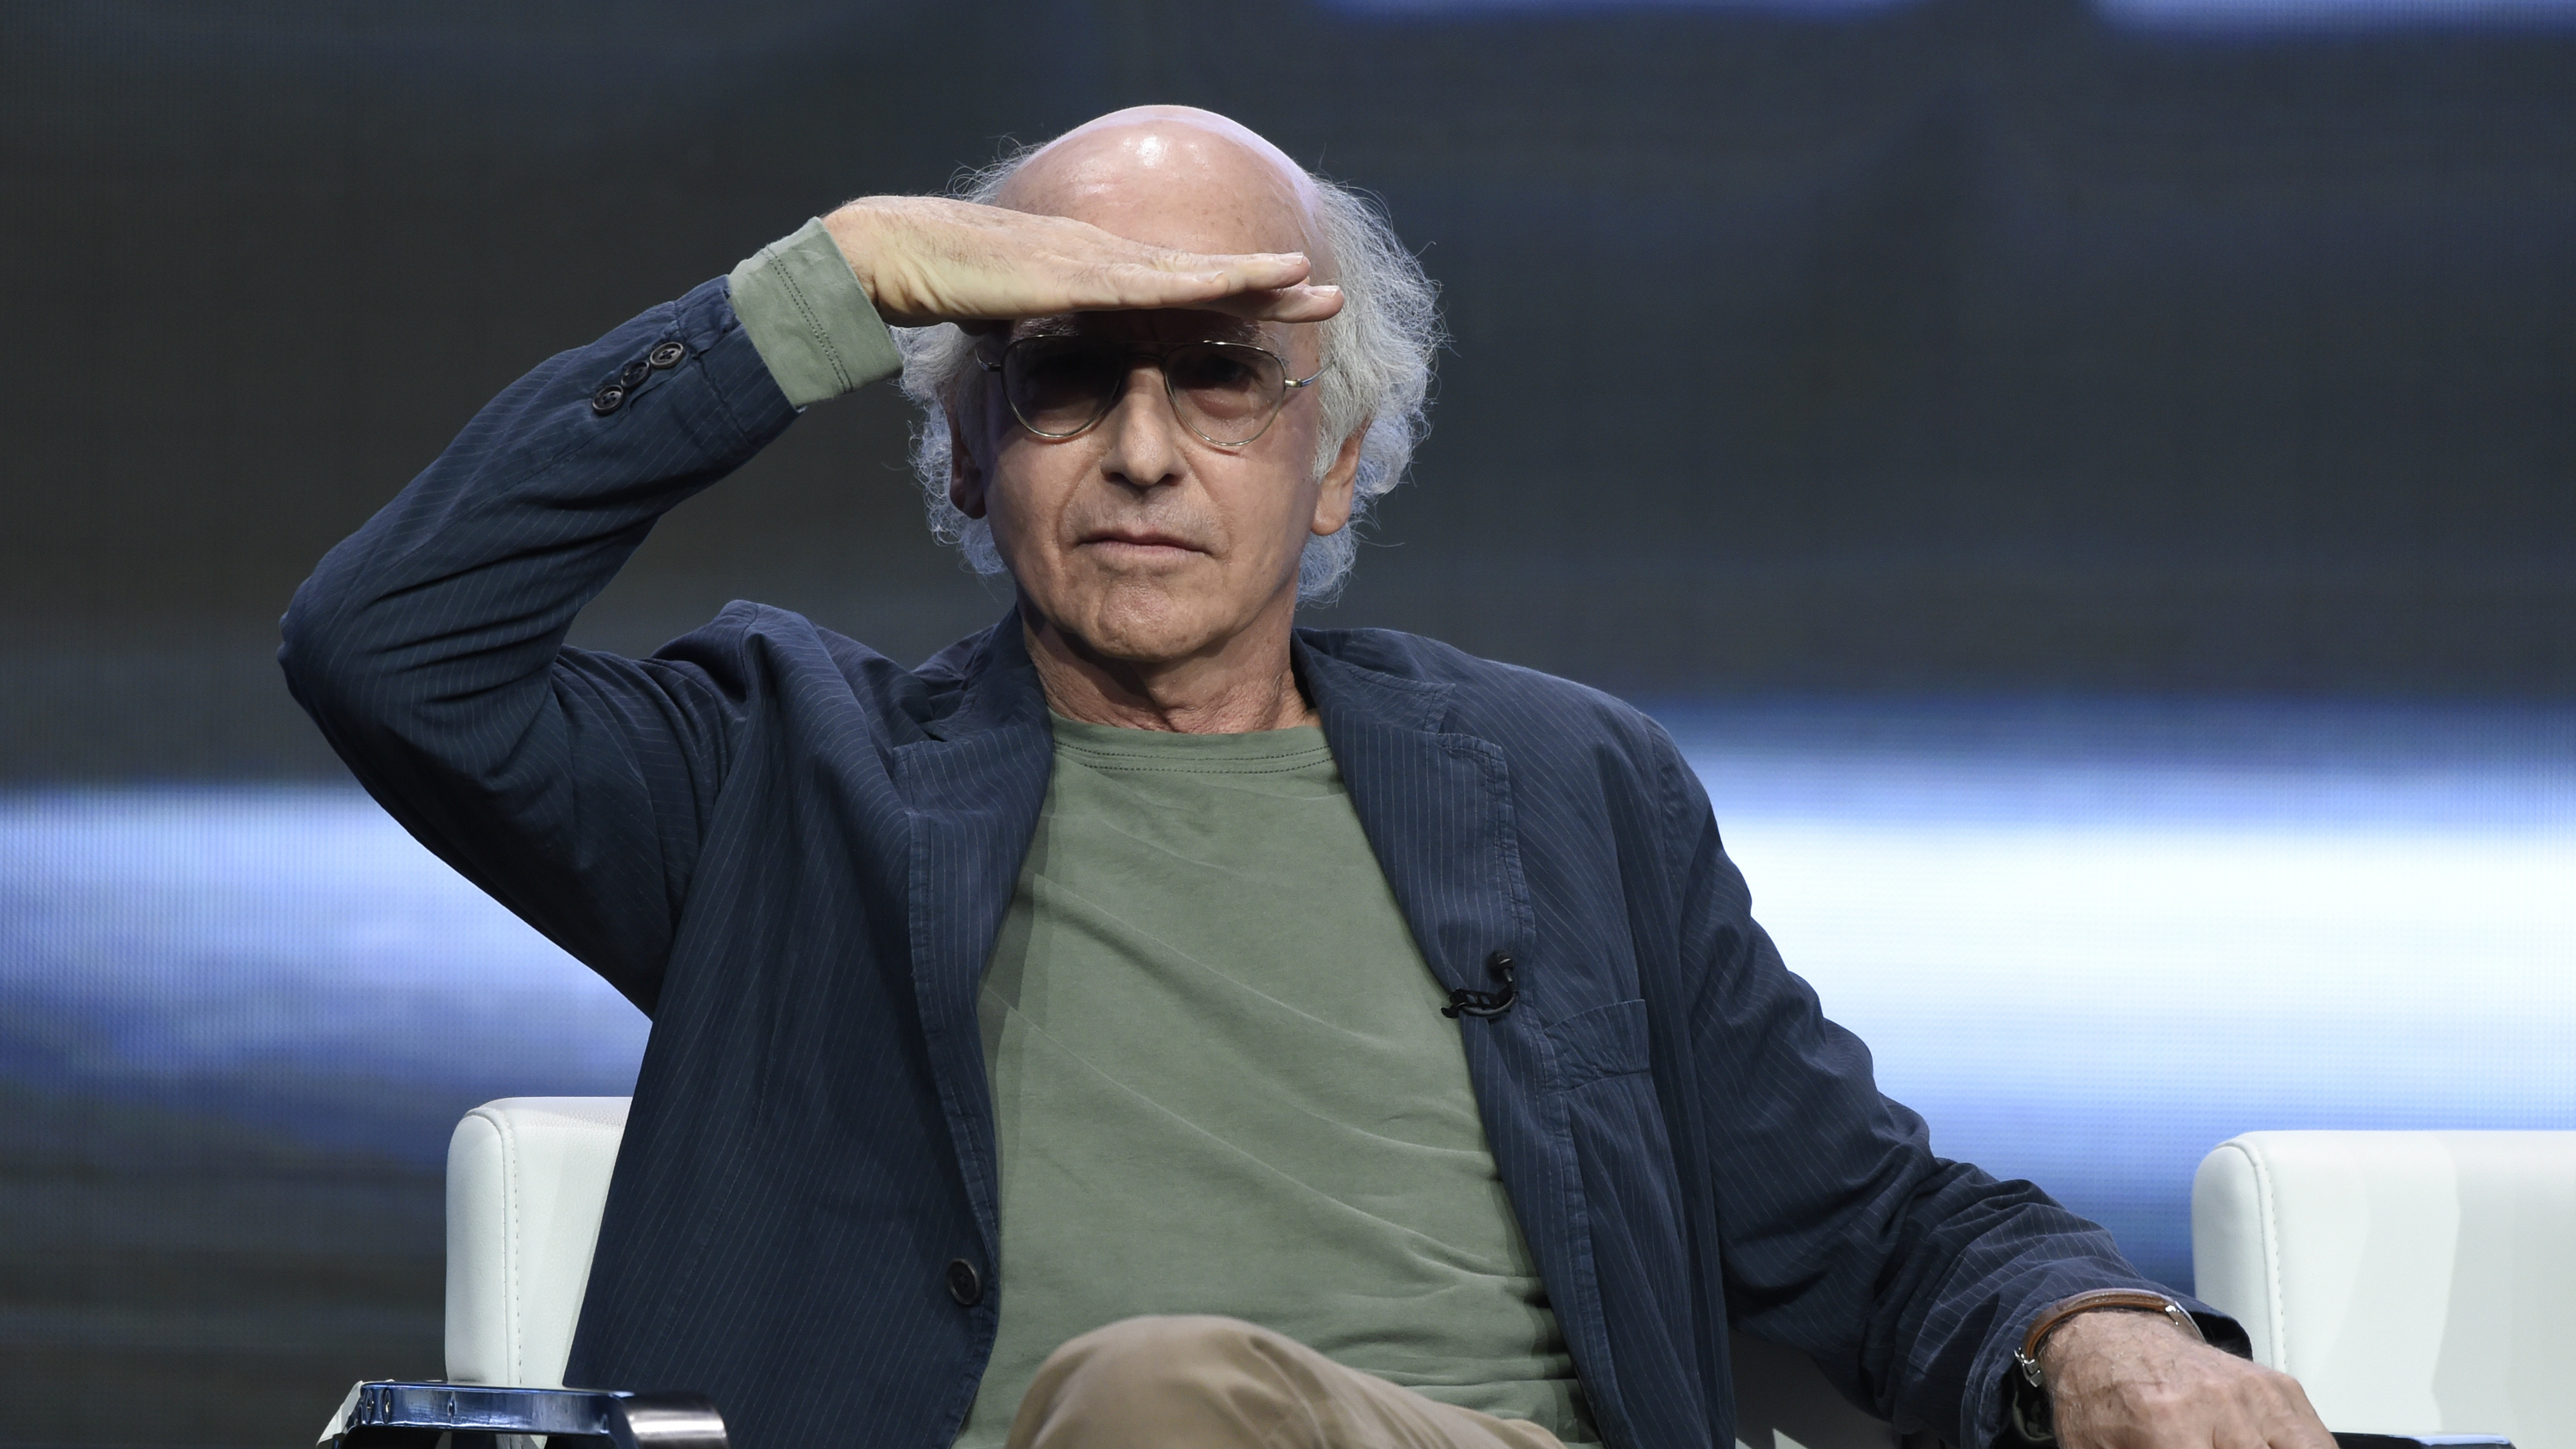 Larry David looking out into a crowd.